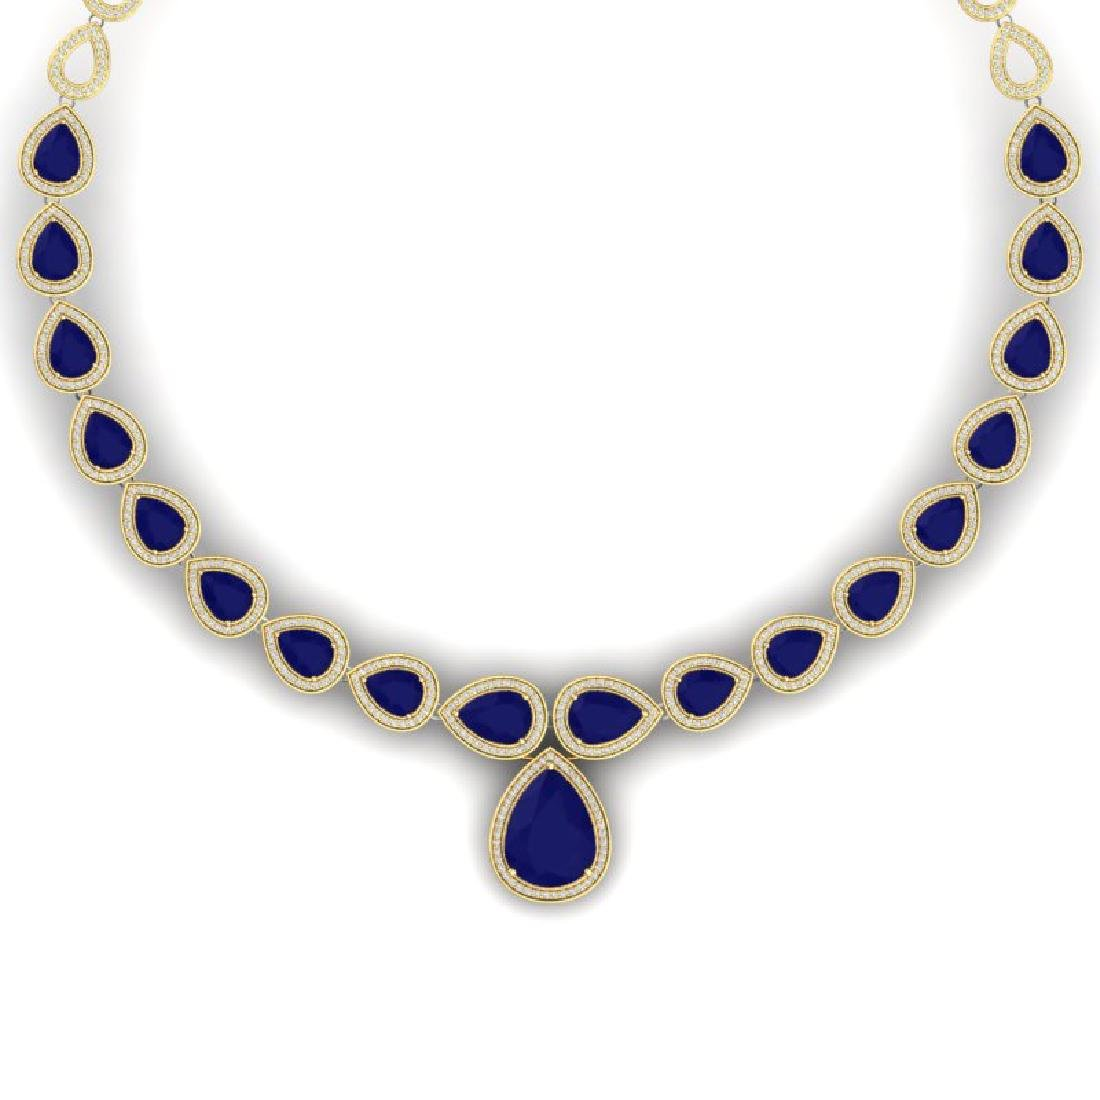 51.41 CTW Royalty Sapphire & VS Diamond Necklace 18K